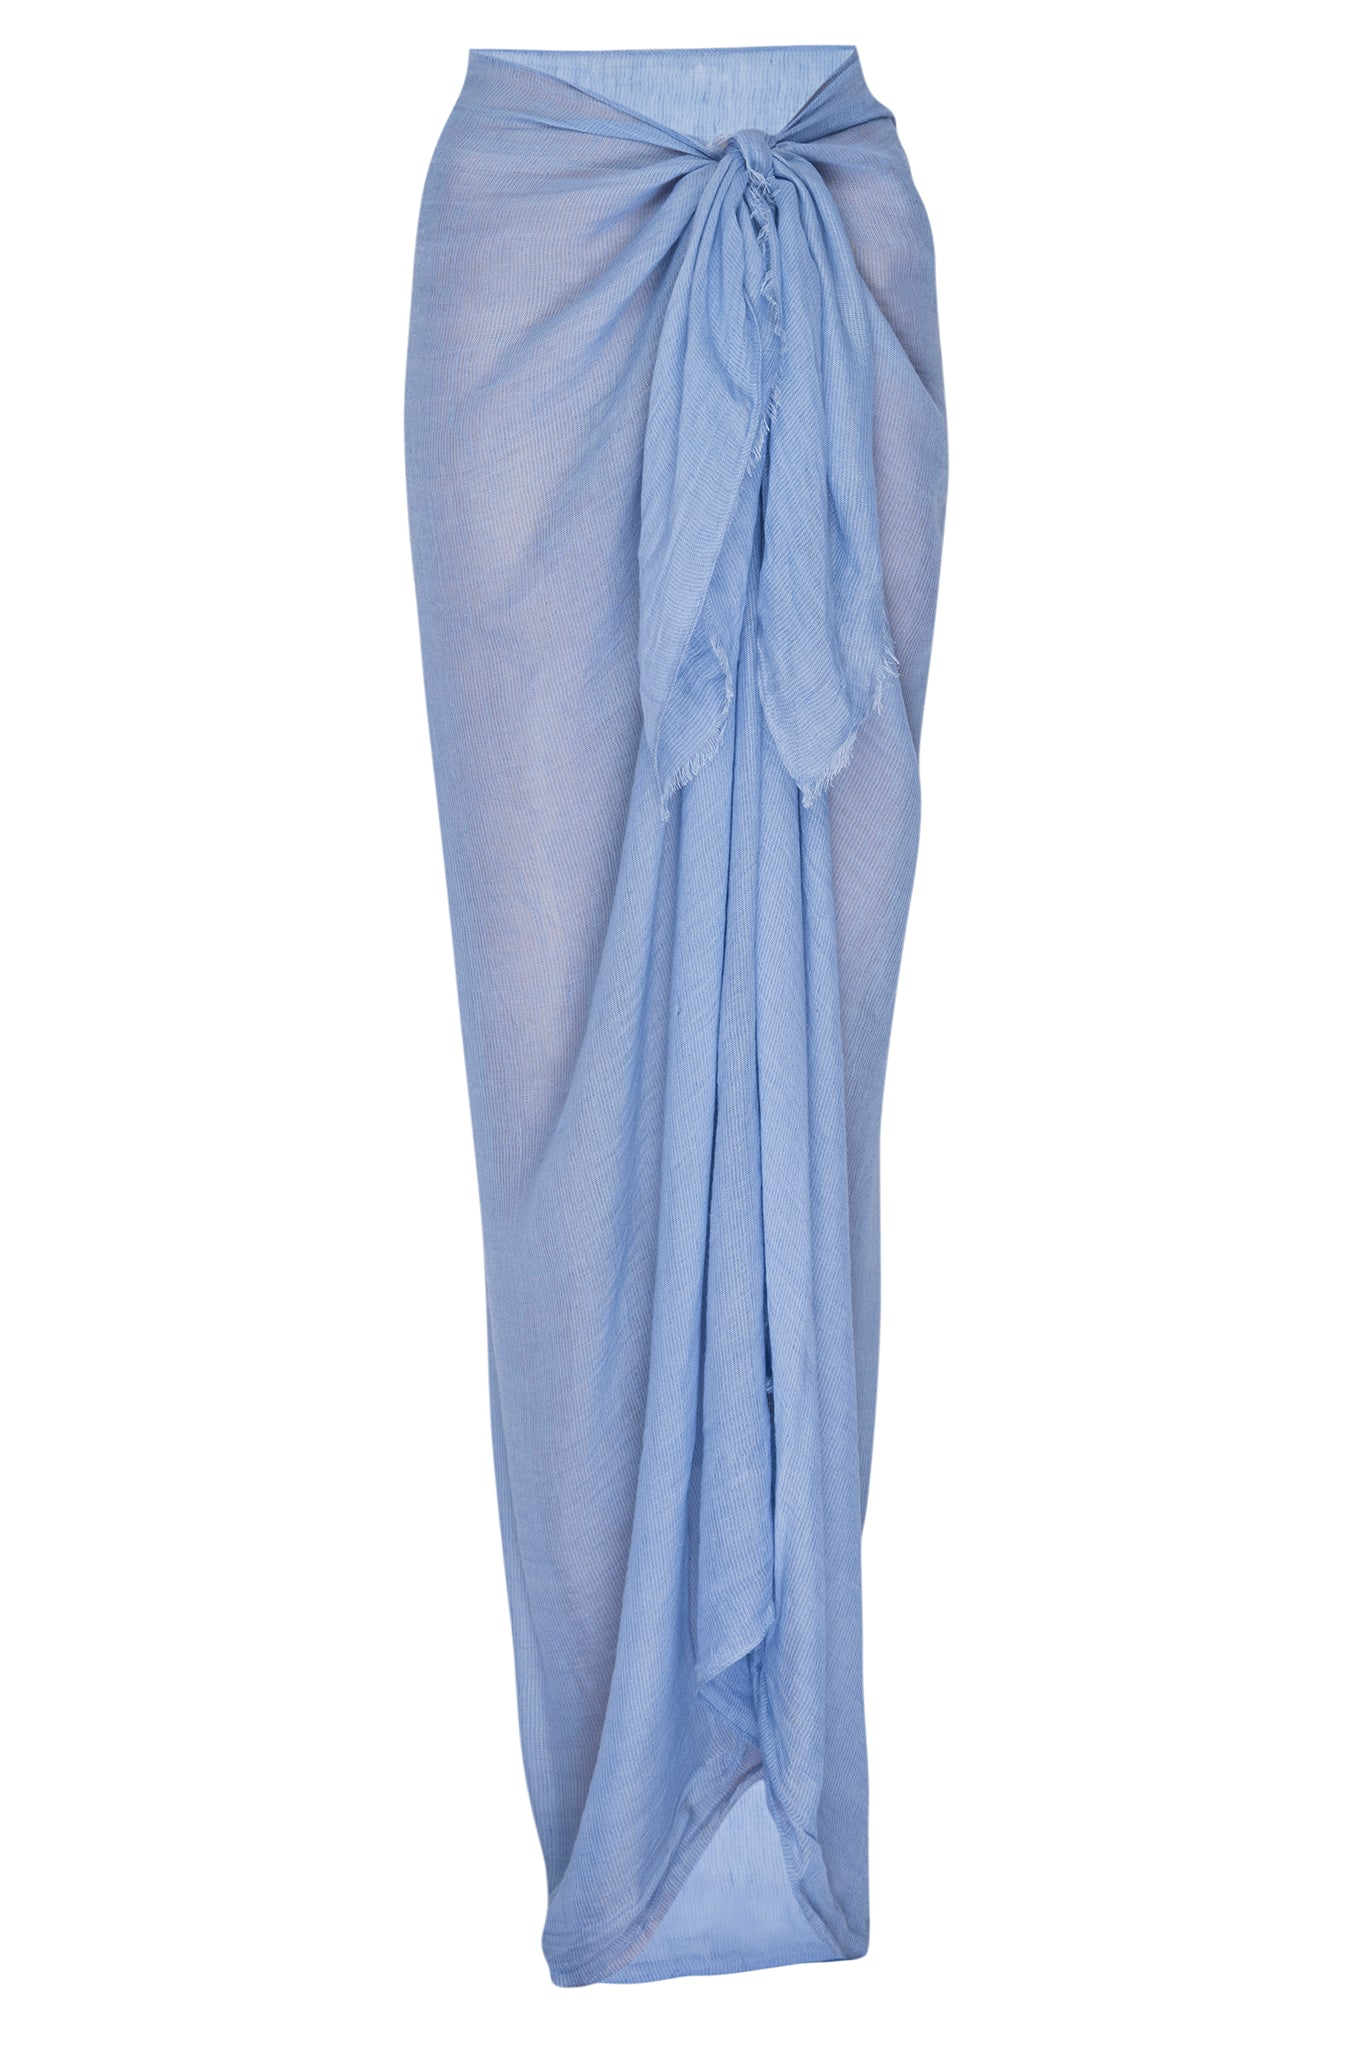 Load image into Gallery viewer, St. Tropez Sarong - Periwinkle